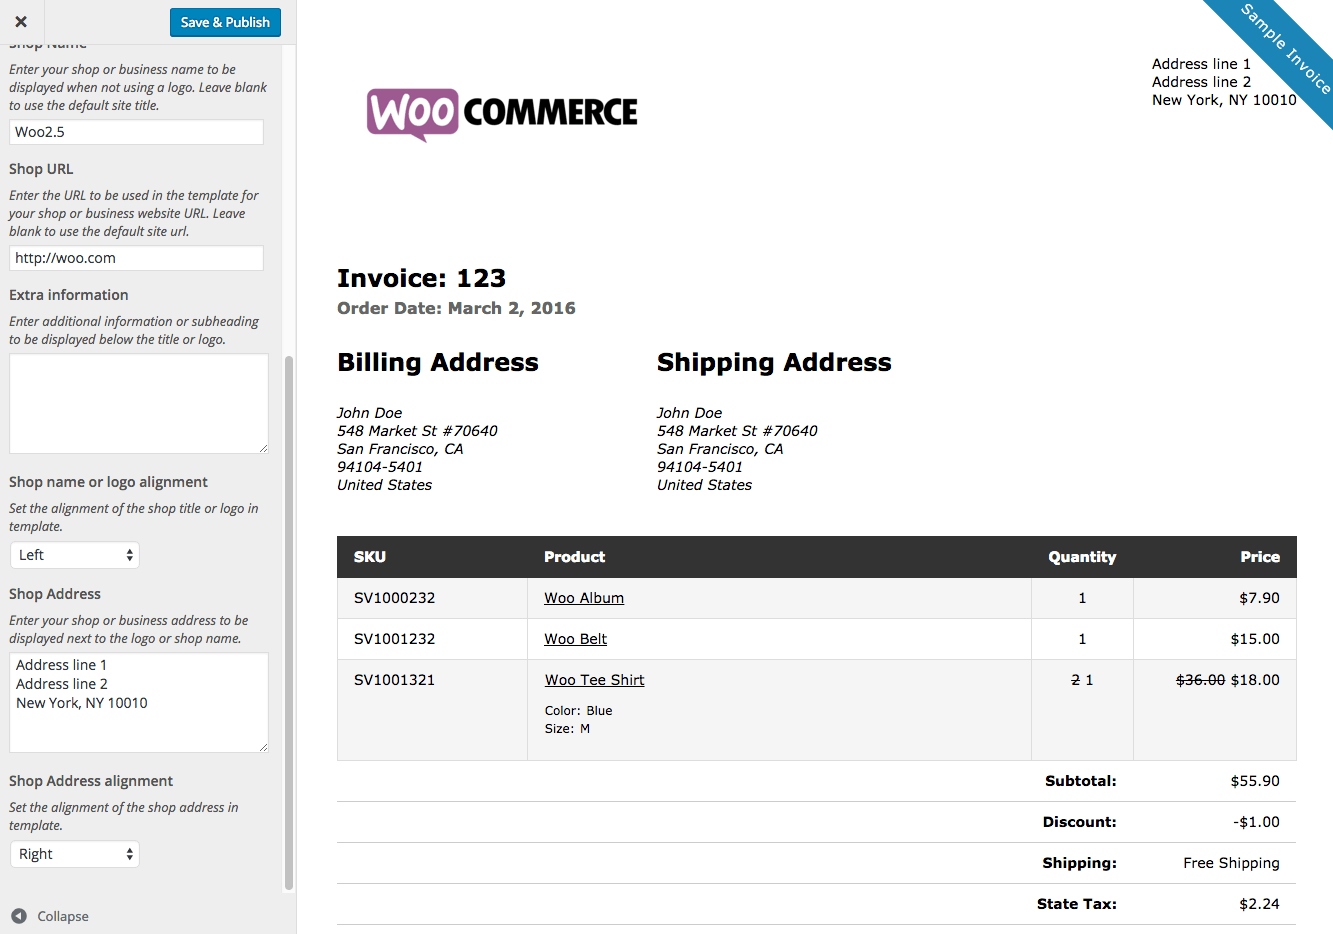 Helpingtohealus  Scenic Woocommerce Print Invoices Amp Packing Lists  Woocommerce Docs With Entrancing Woocommerce Print Invoices  Packing Lists Customizer With Archaic Gst On Invoices Also Invoice Maker Online Free In Addition Sage Invoice Templates And Invoice Prices Of Cars As Well As Example Of Vat Invoice Additionally Invoice Template South Africa From Docswoocommercecom With Helpingtohealus  Entrancing Woocommerce Print Invoices Amp Packing Lists  Woocommerce Docs With Archaic Woocommerce Print Invoices  Packing Lists Customizer And Scenic Gst On Invoices Also Invoice Maker Online Free In Addition Sage Invoice Templates From Docswoocommercecom